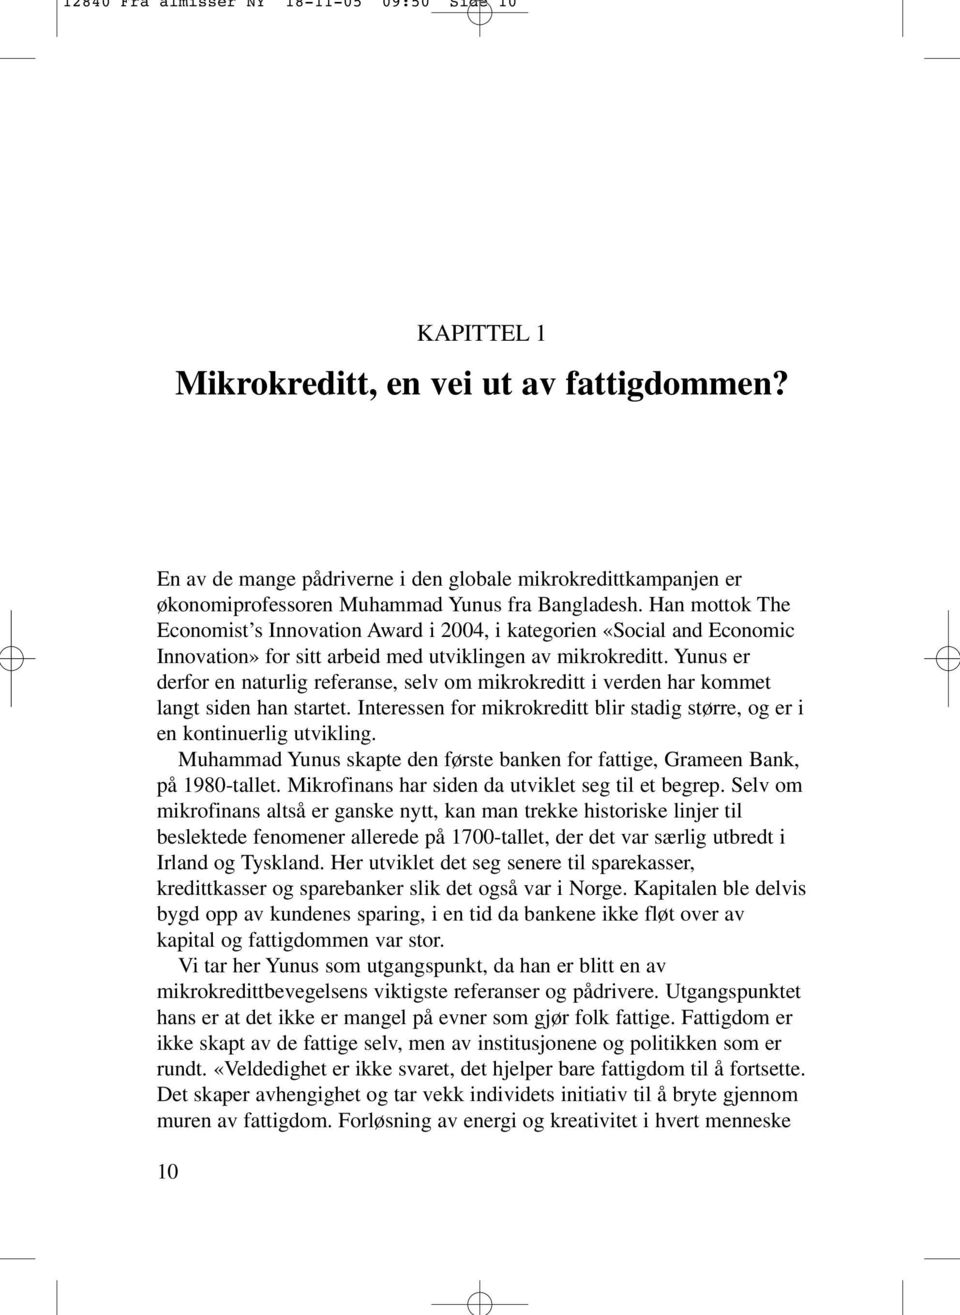 Han mottok The Economist s Innovation Award i 2004, i kategorien «Social and Economic Innovation» for sitt arbeid med utviklingen av mikrokreditt.